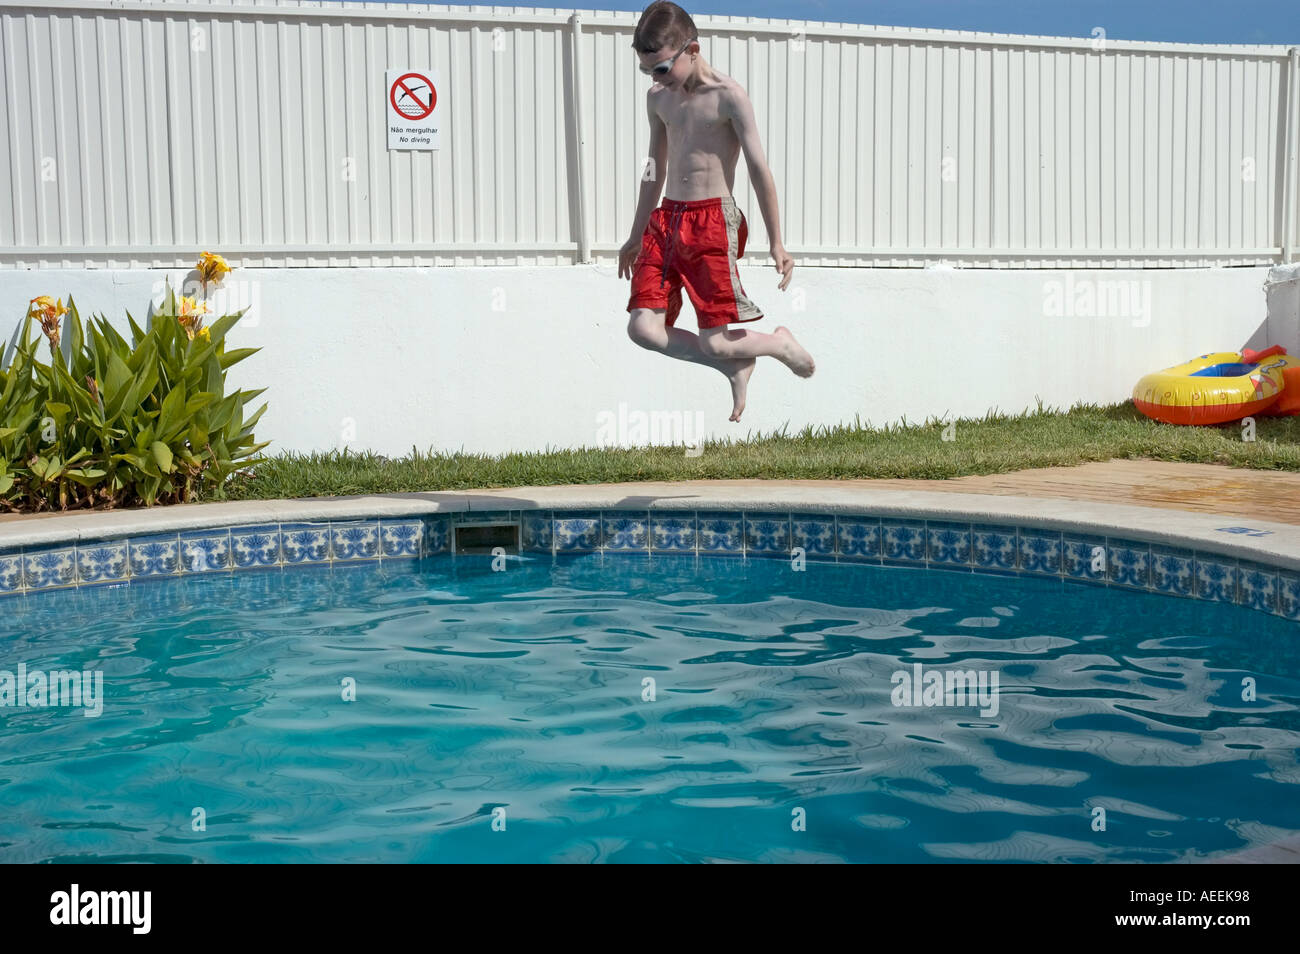 9 year old boy jumping into a swimming pool on holiday - Stock Image